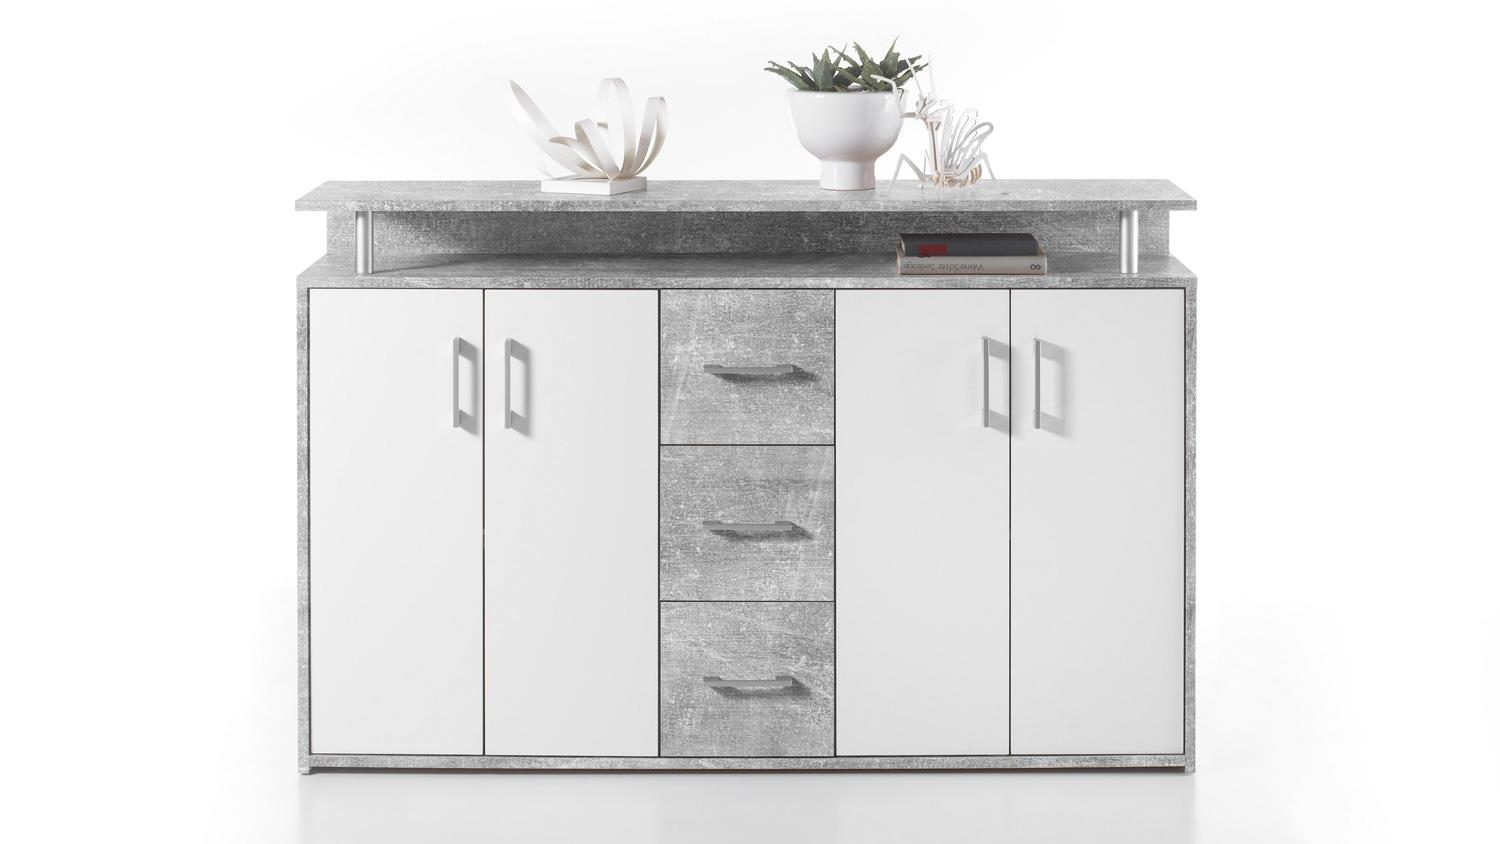 Kommode Betonoptik Kommode Drift Highboard In Beton Optik Grau Und Weiß Inkl